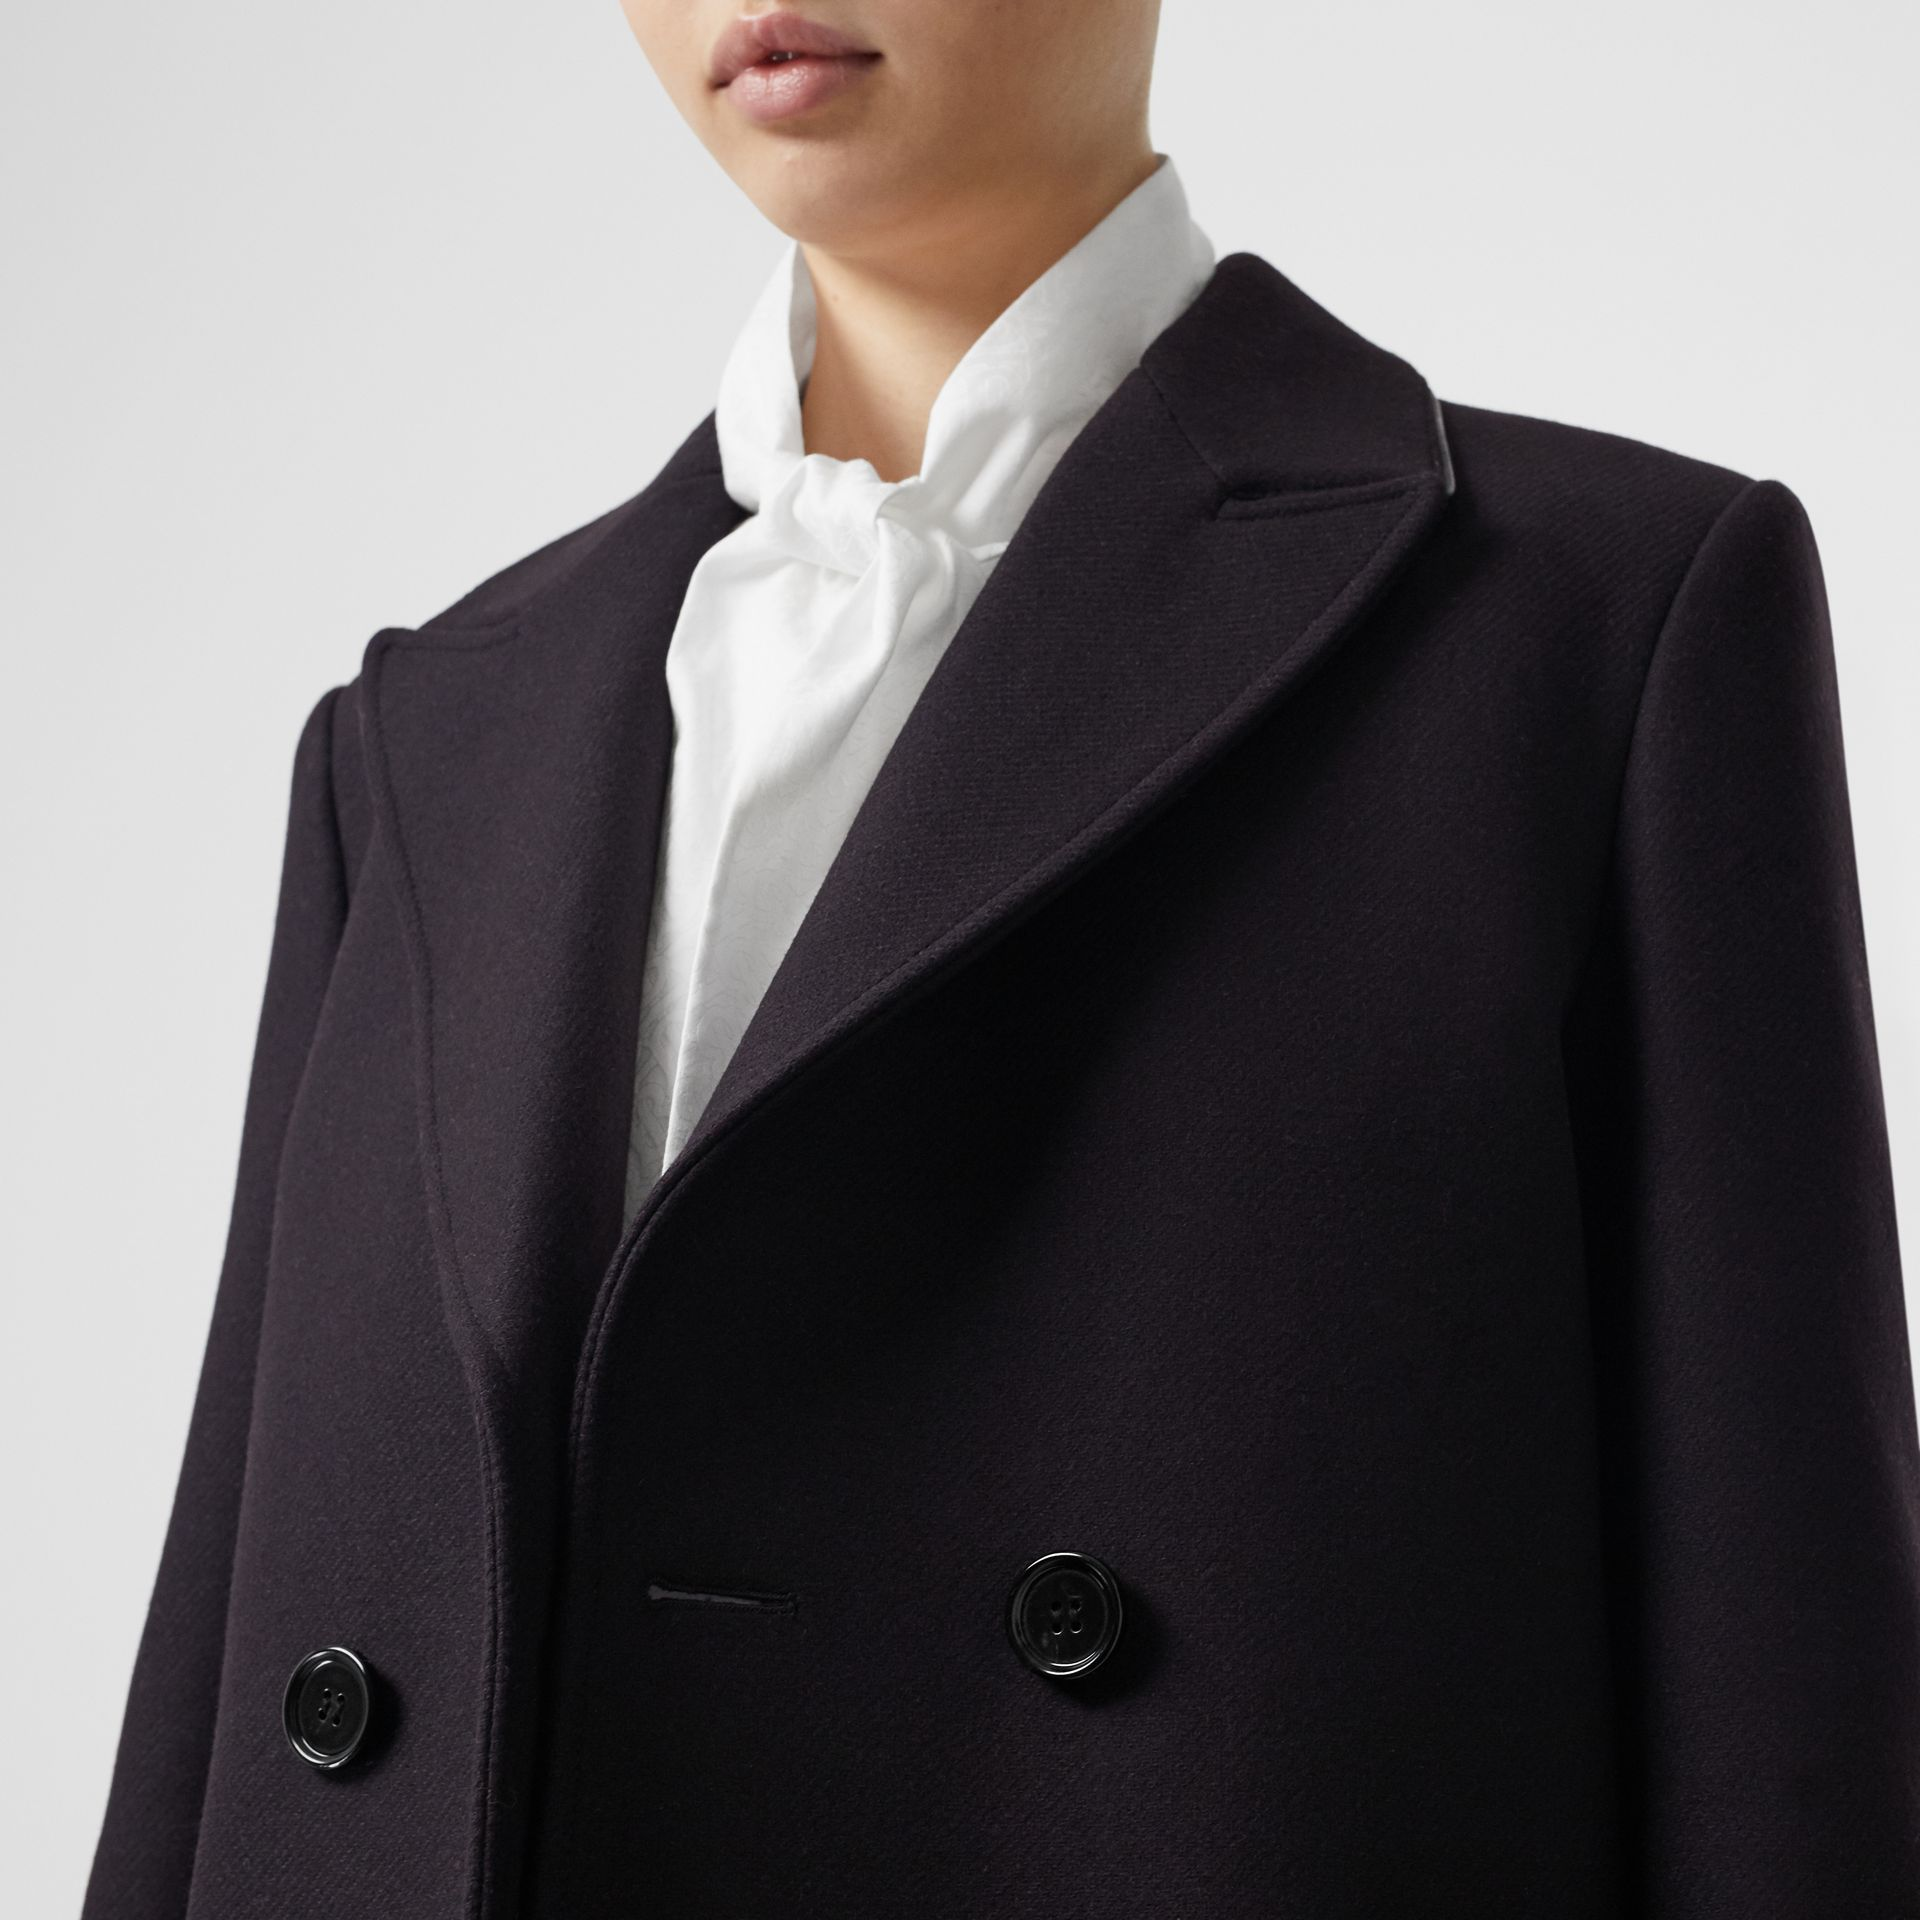 Lambskin Trim Wool Cashmere Blend Tailored Coat in Black Maroon - Women | Burberry - gallery image 5